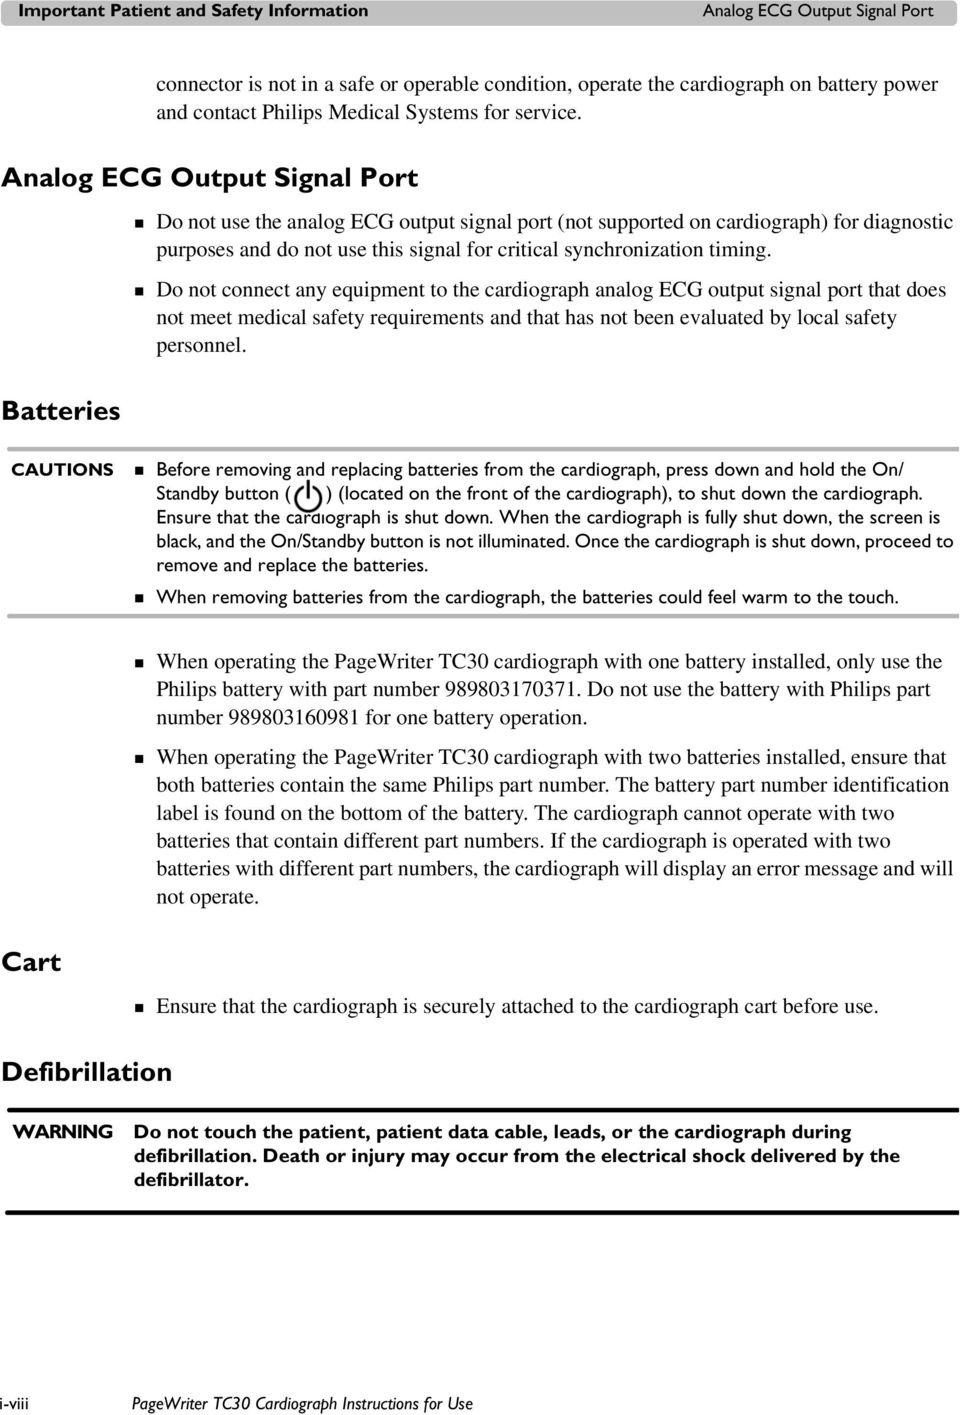 PageWriter TC30 Cardiograph INSTRUCTIONS FOR USE - PDF